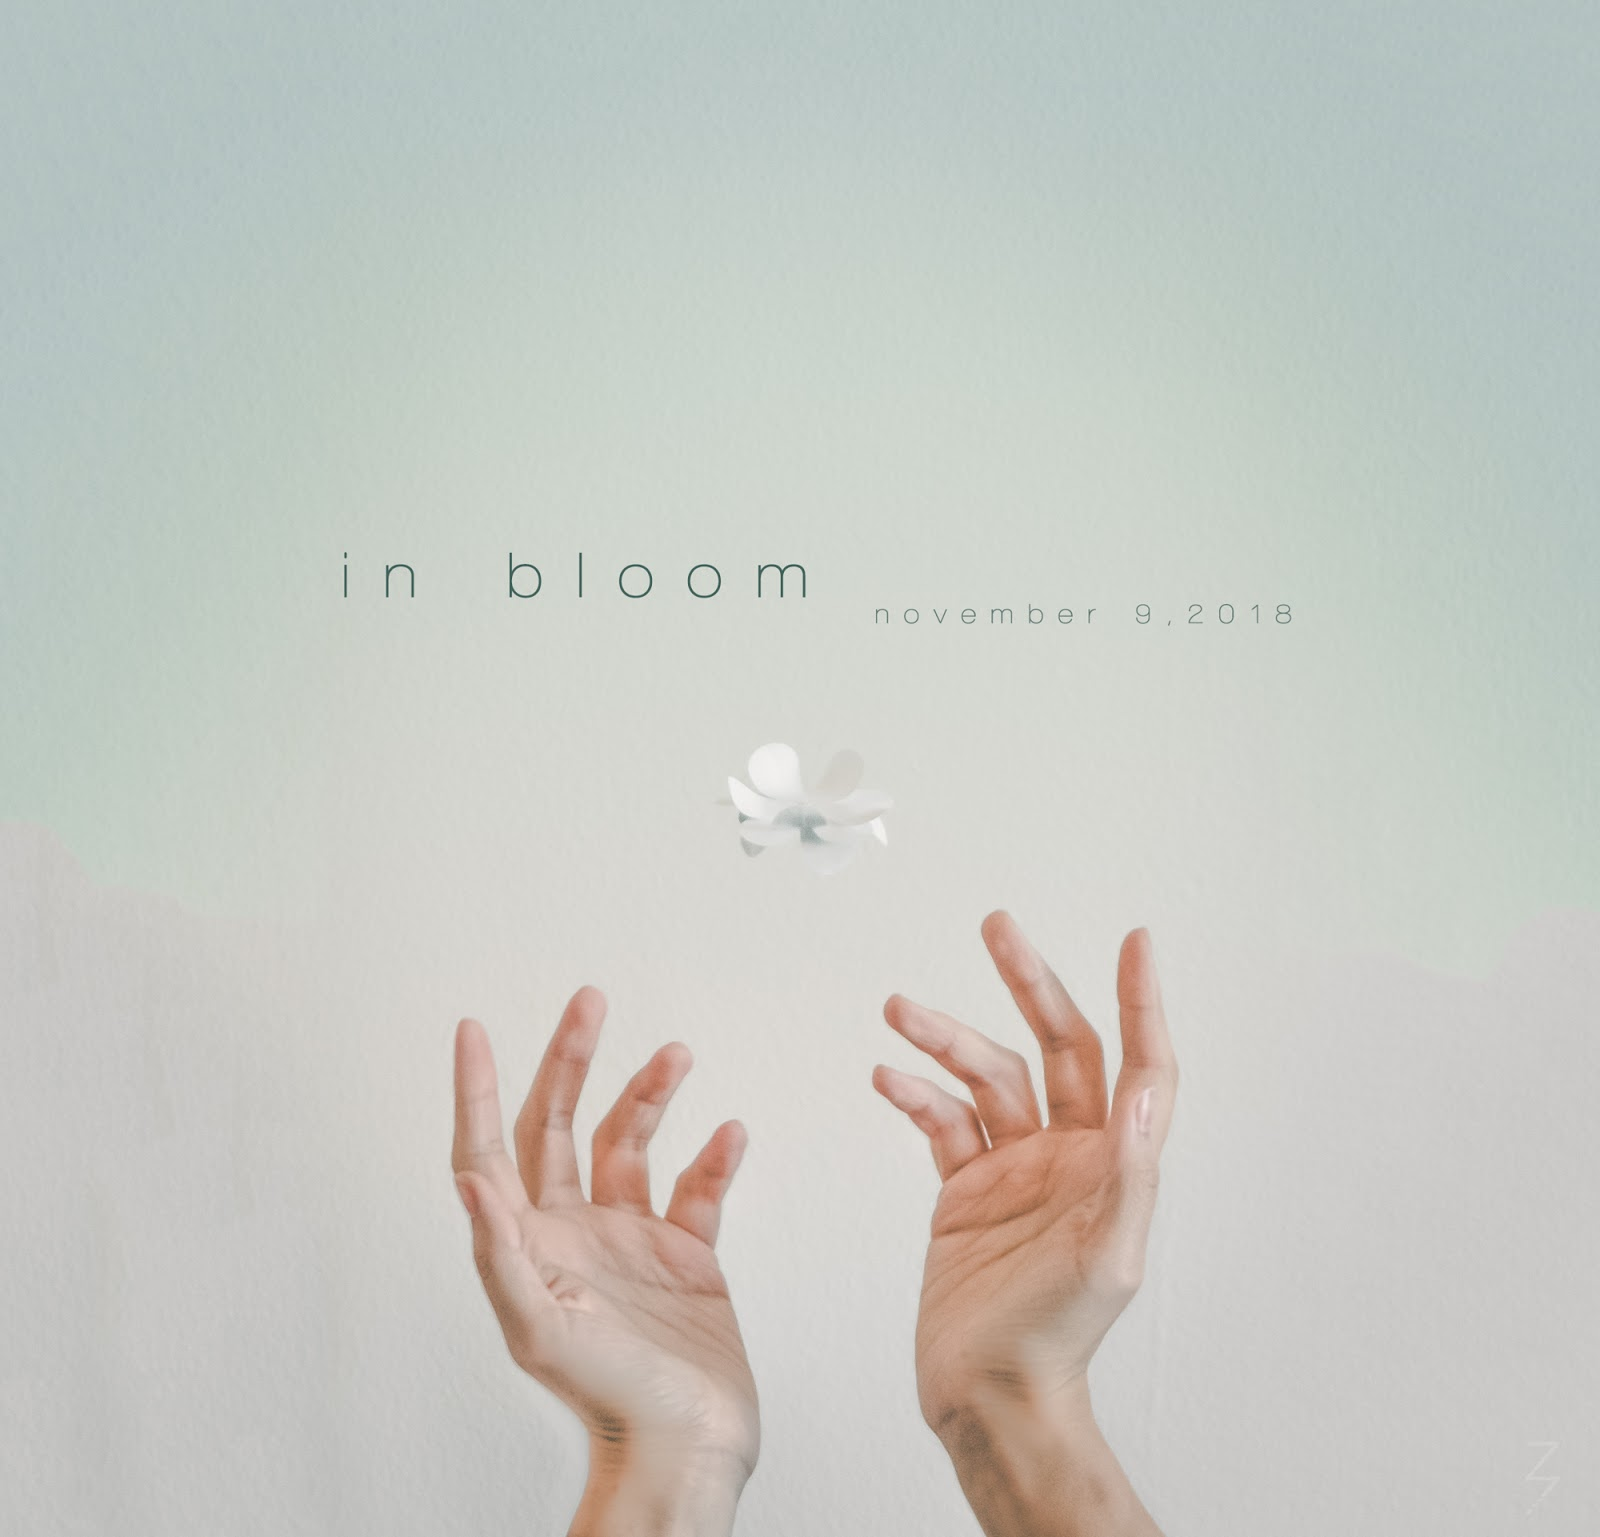 IN BLOOM - An Intimate Interactive Art Installation